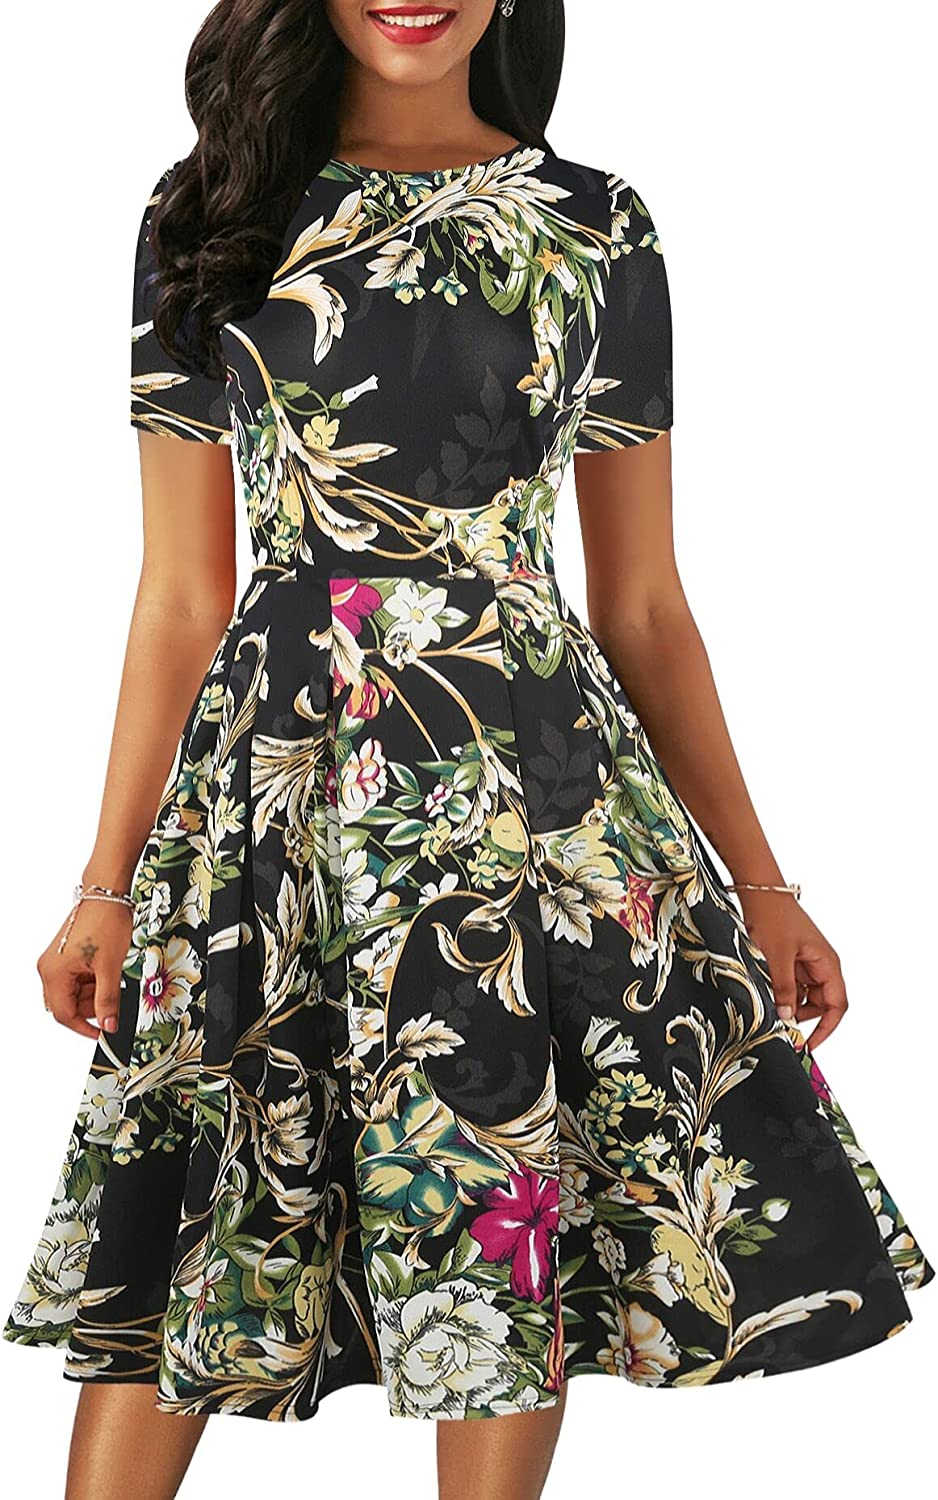 oxiuly Women's Elegant Floral Flare Knee Length Vintage Dress Evening Dinner Party Casual Swing Dresses with Pockets OX336